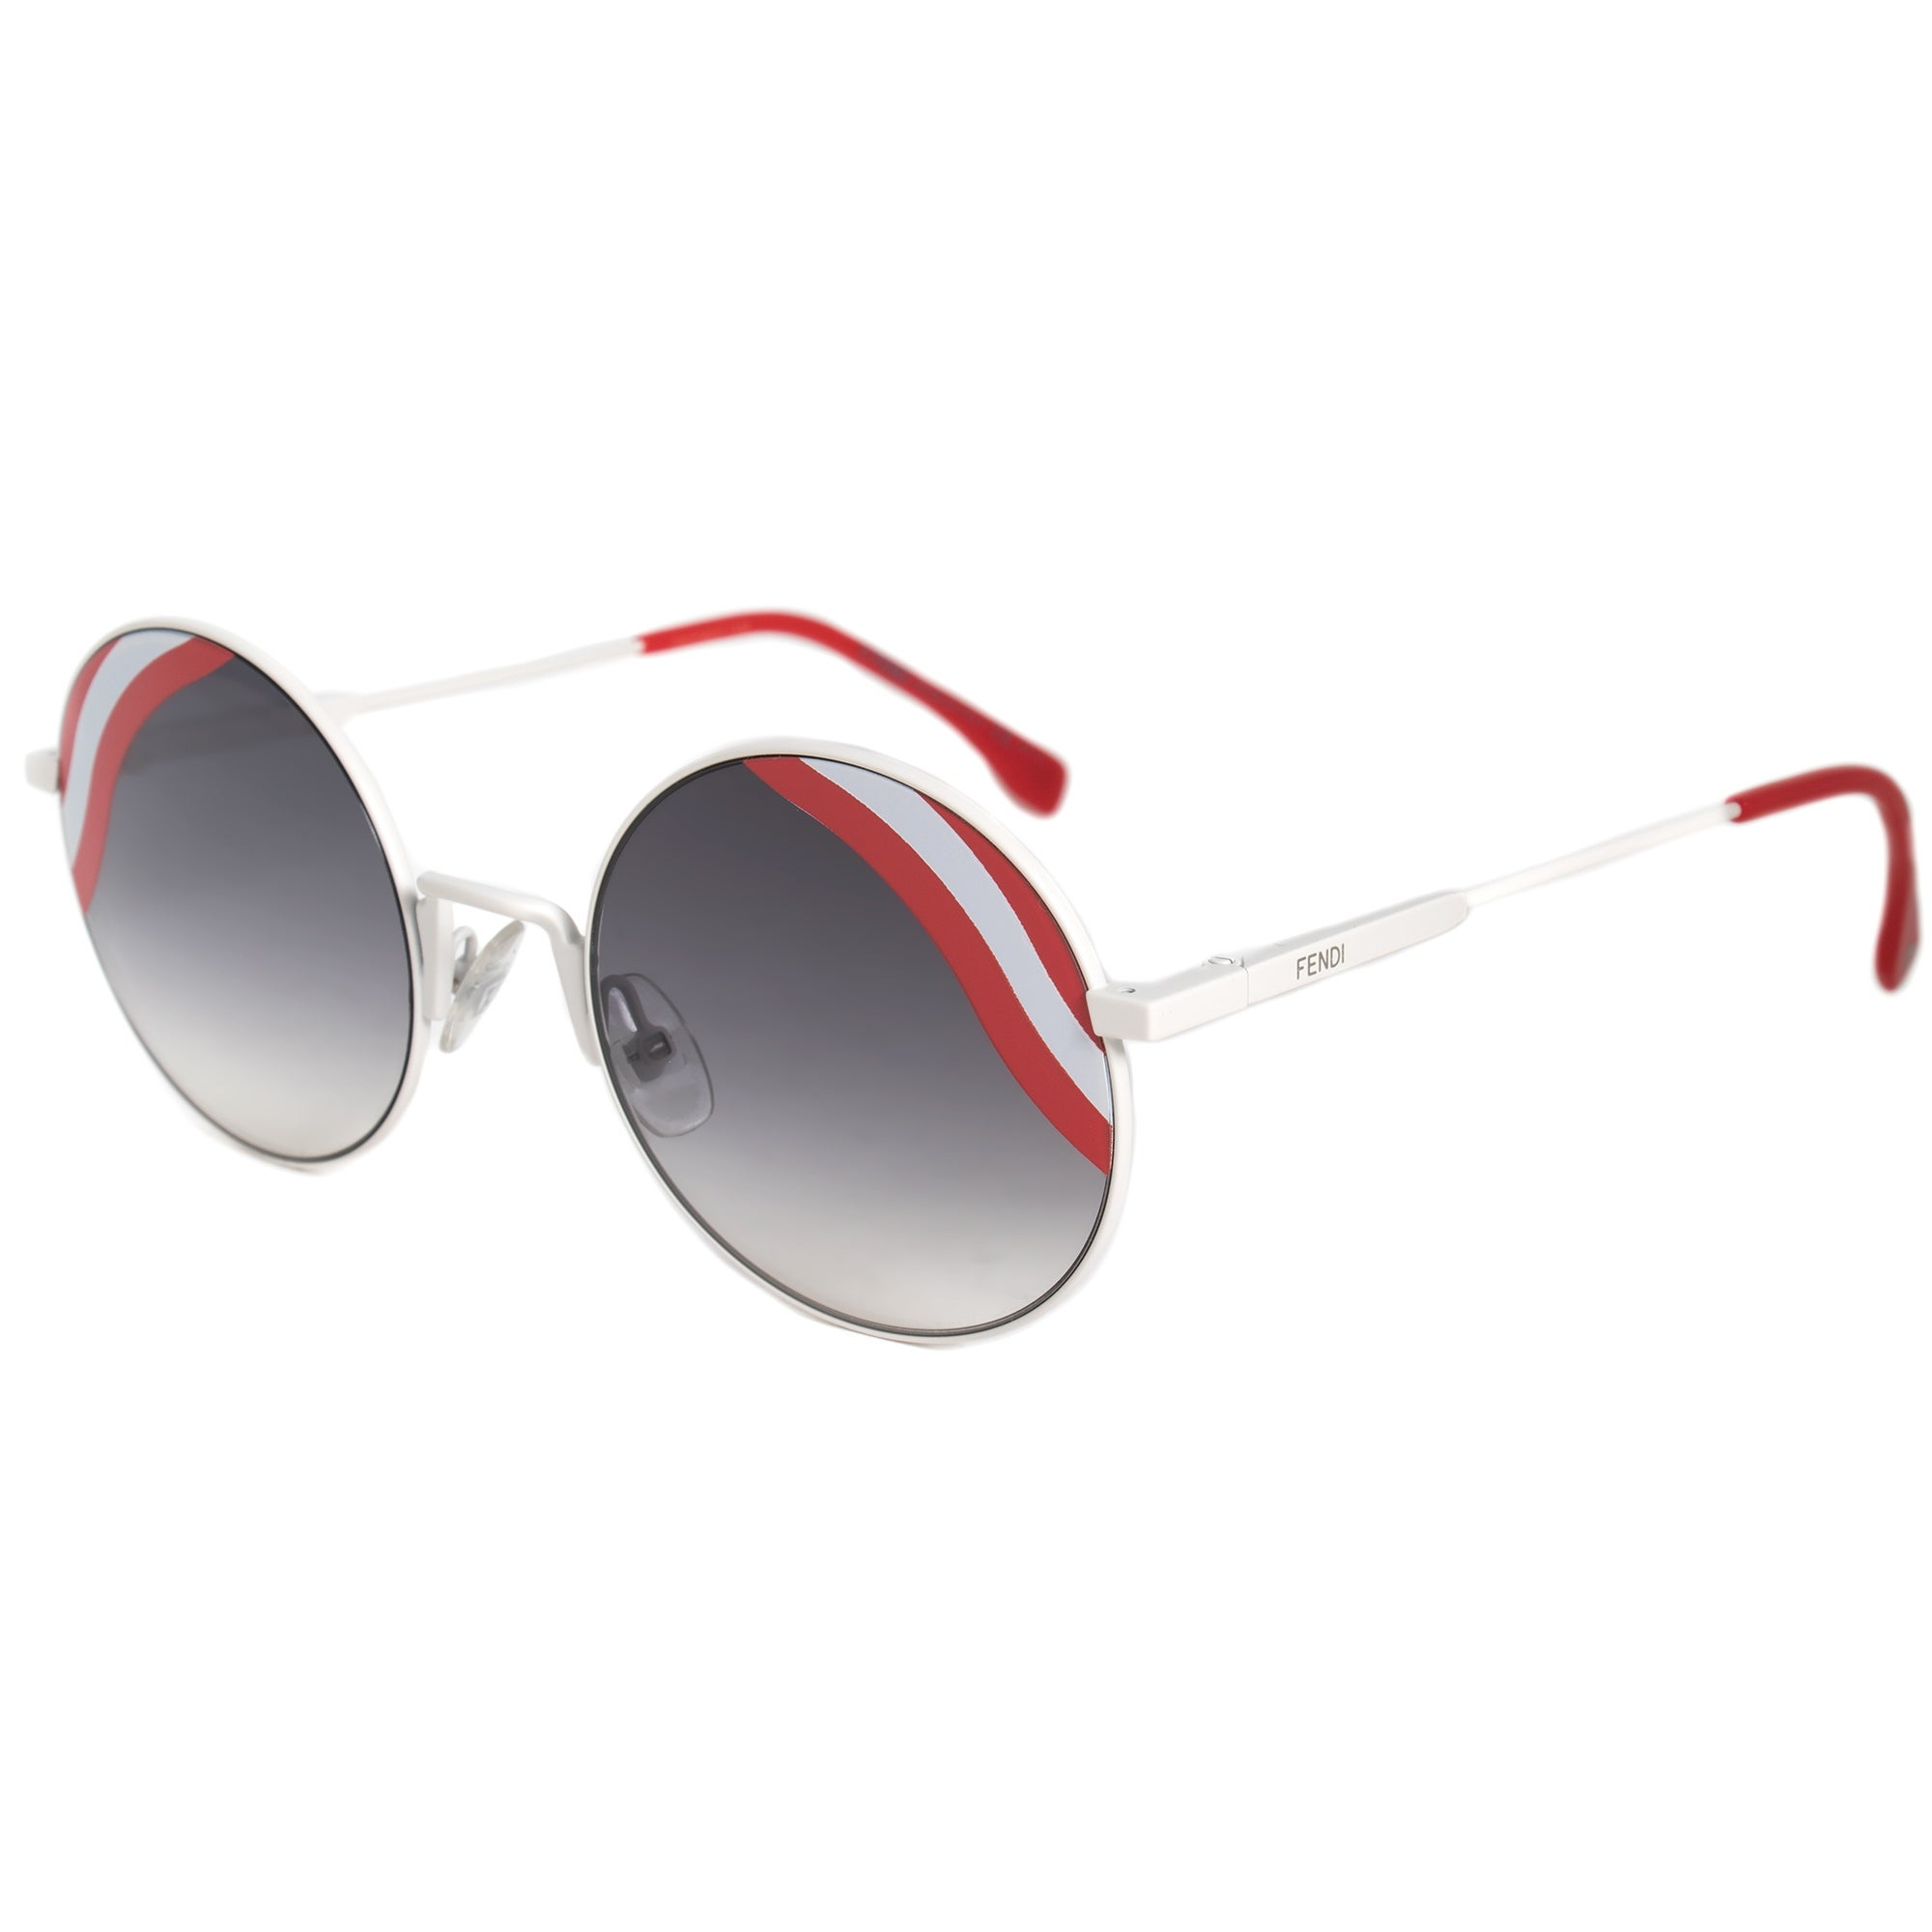 95e1ab3ee13 Shop Fendi Waves Round Sunglasses FF0248S VK6 9O 53 - Free Shipping Today -  Overstock.com - 19622514